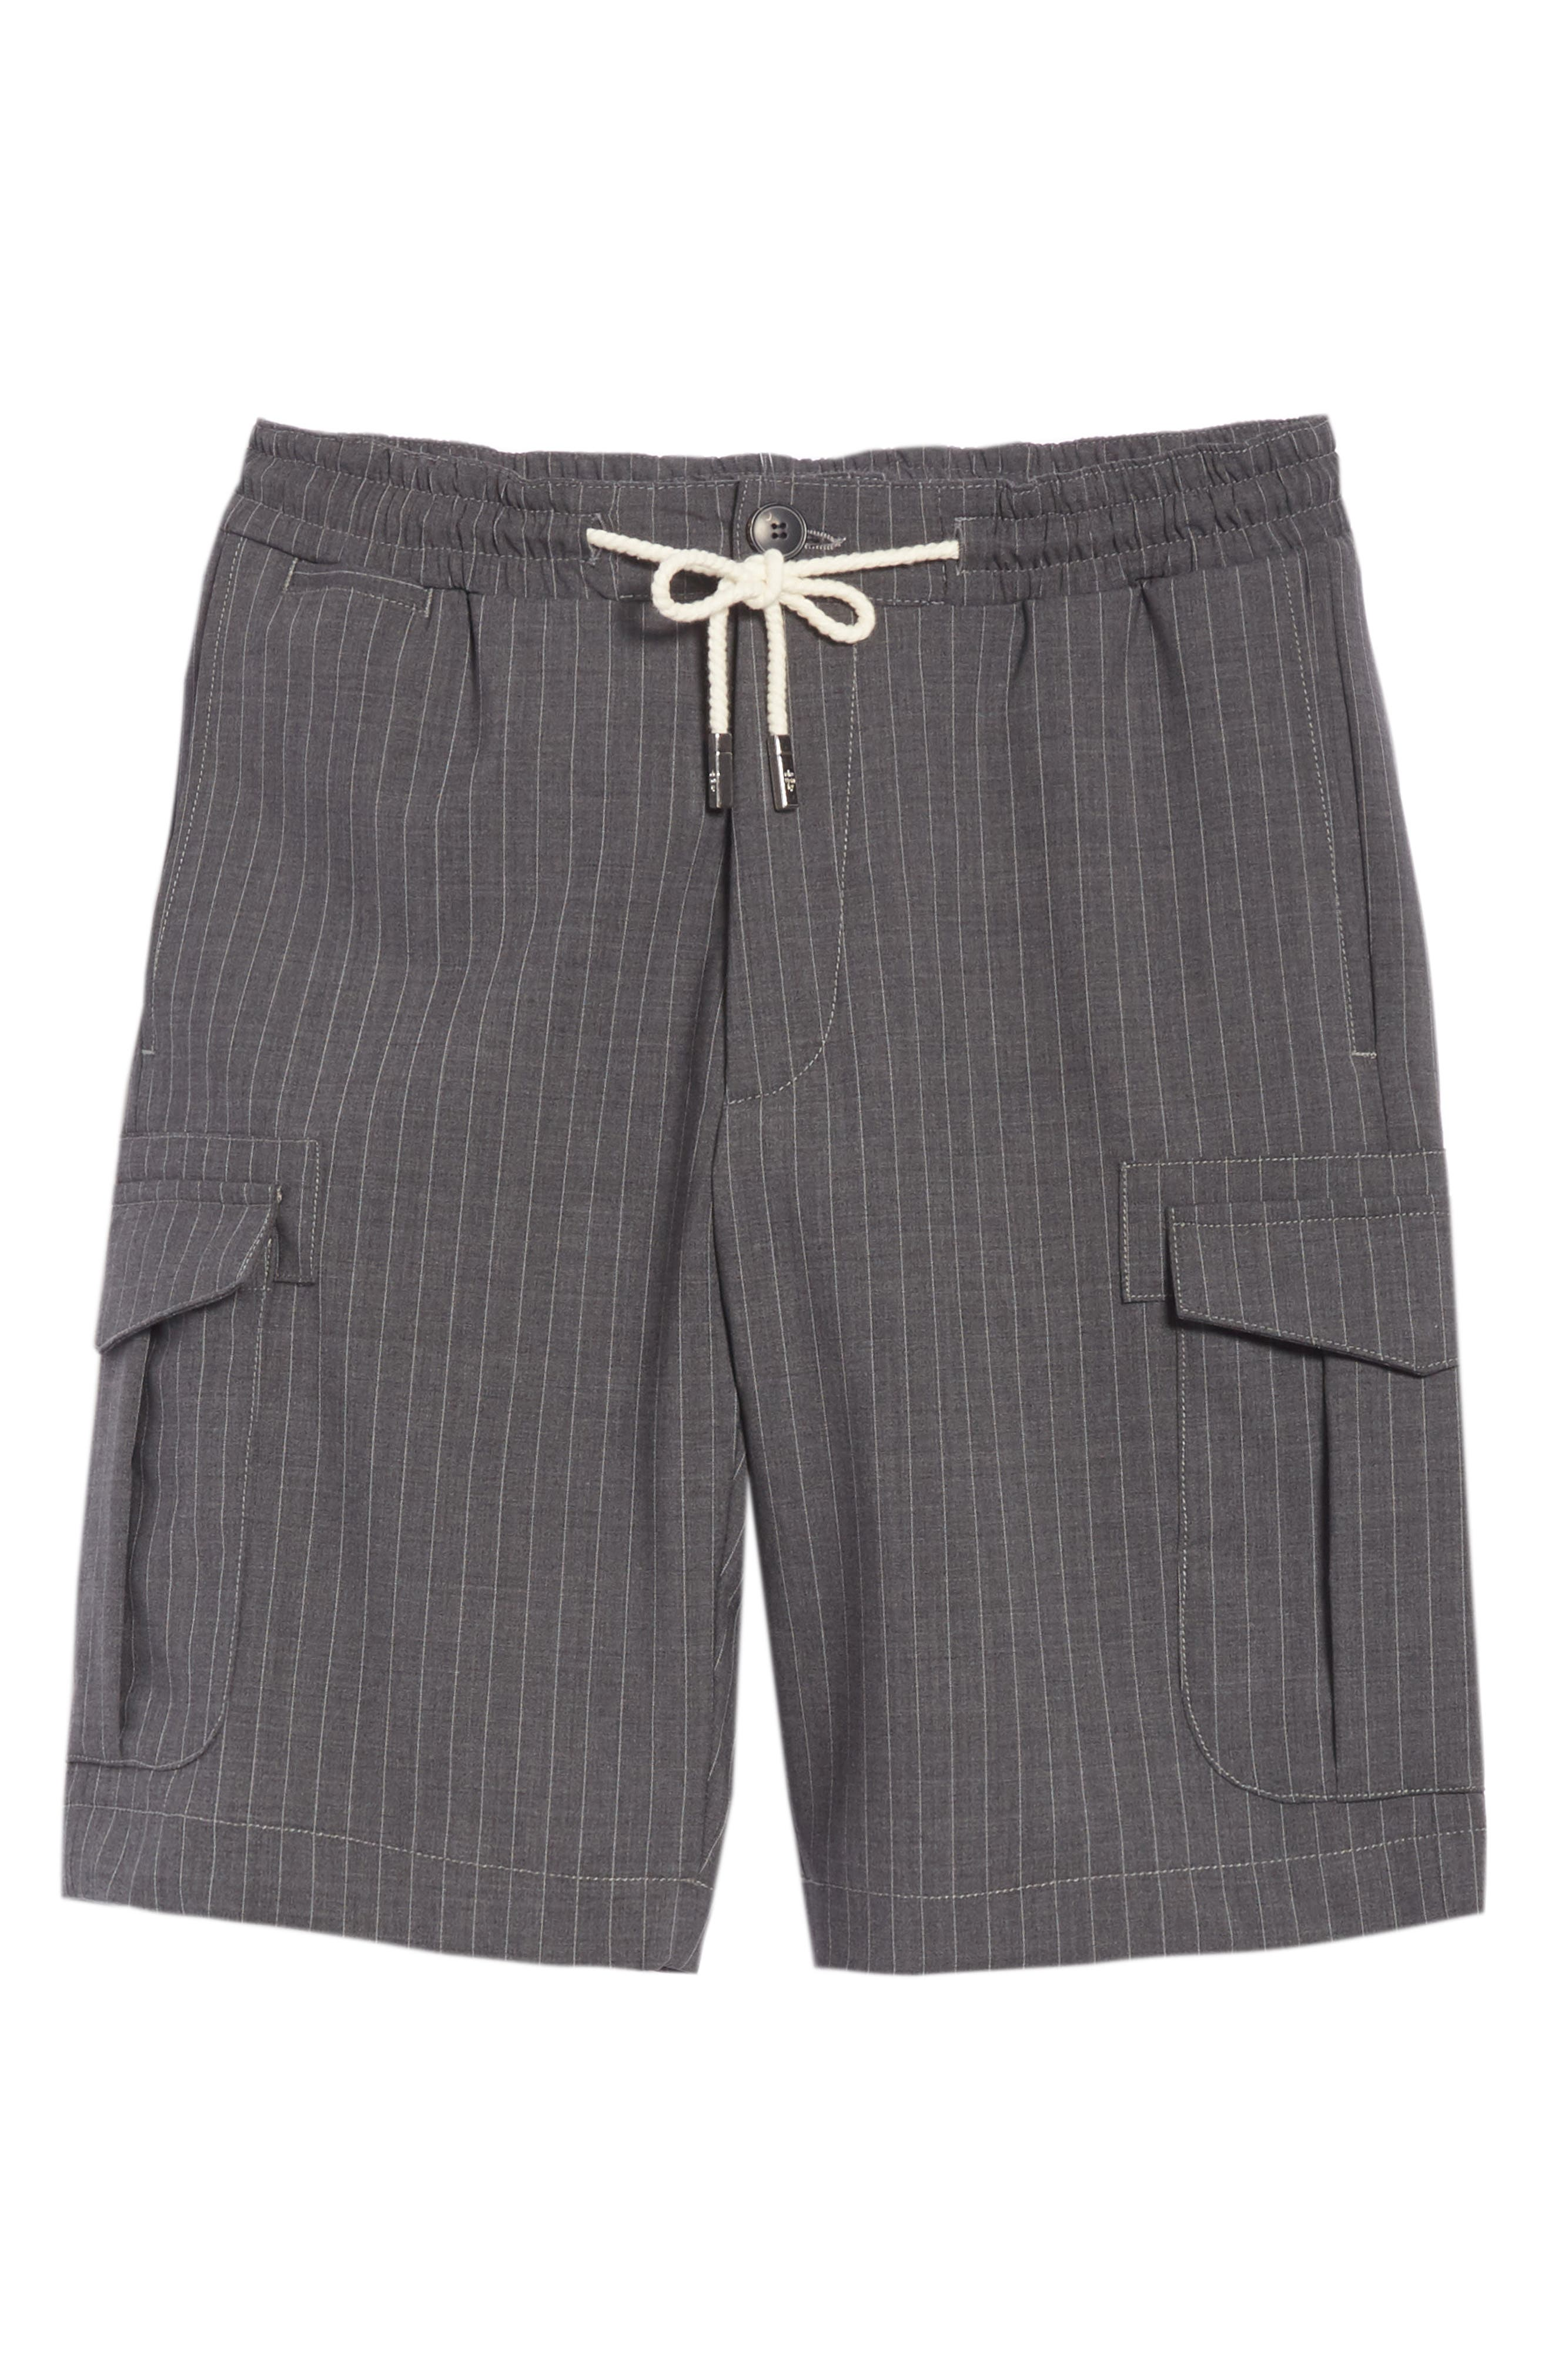 Stretch Wool Cargo Shorts,                             Alternate thumbnail 6, color,                             020